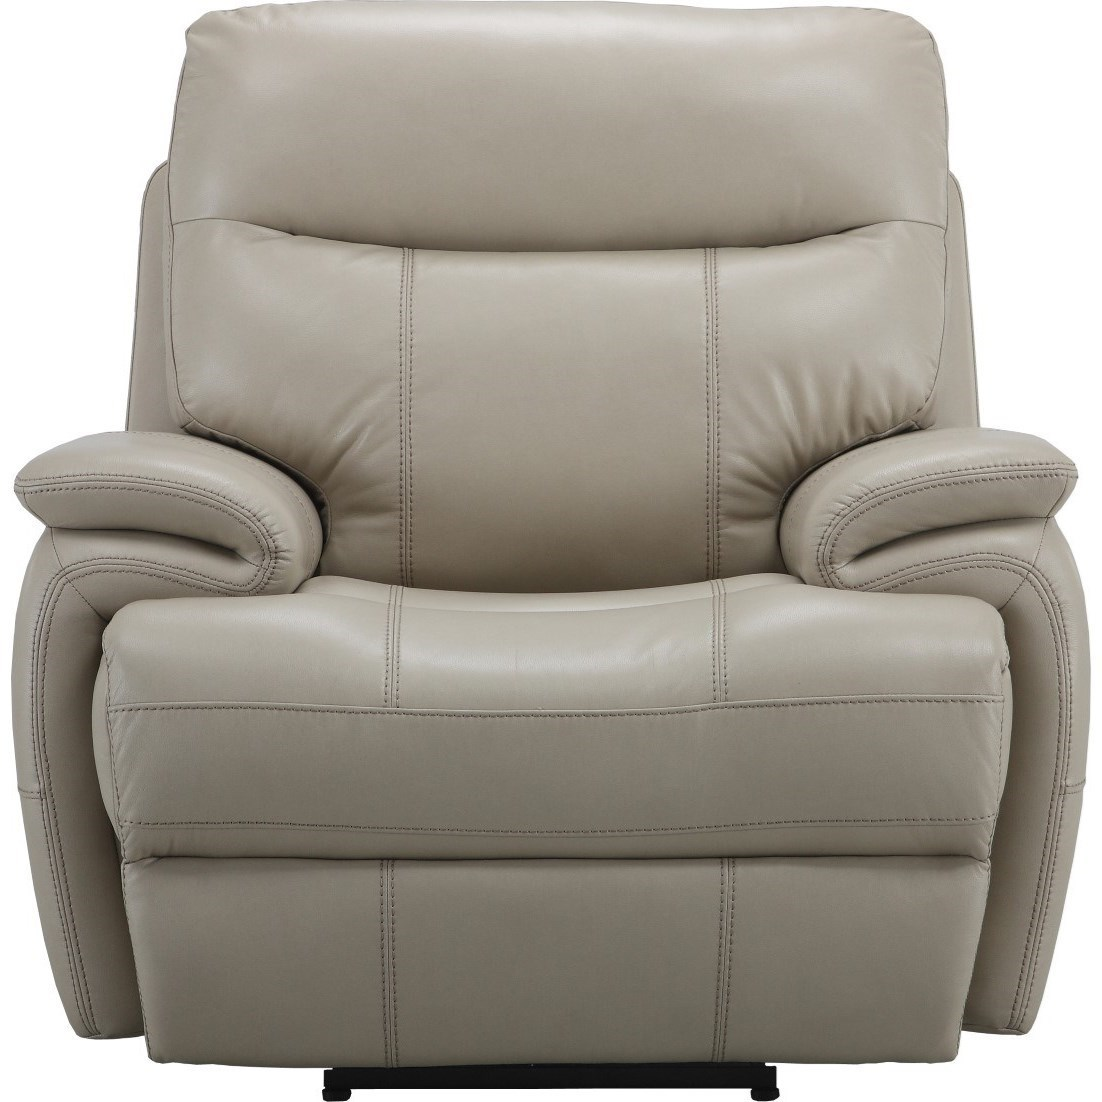 Recliner Pillow Dylan Casual Power Recliner With Pillow Arms By Parker Living At Del Sol Furniture